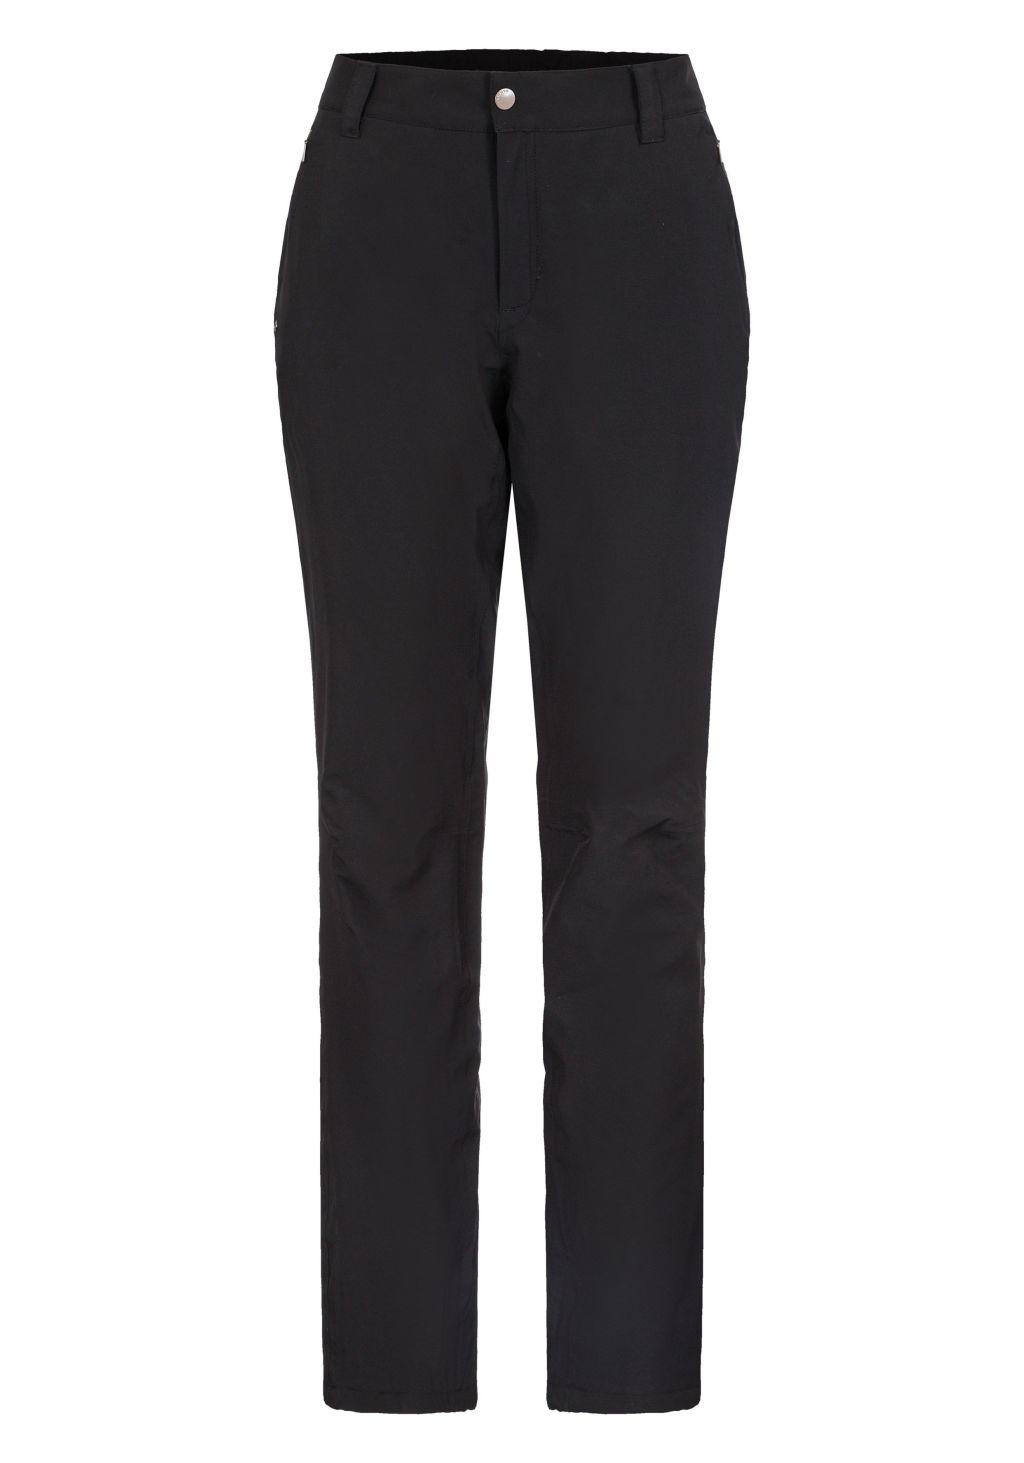 Luhta Sella Pants W - Naisten toppahousut - Intersport 064f6d2fbb